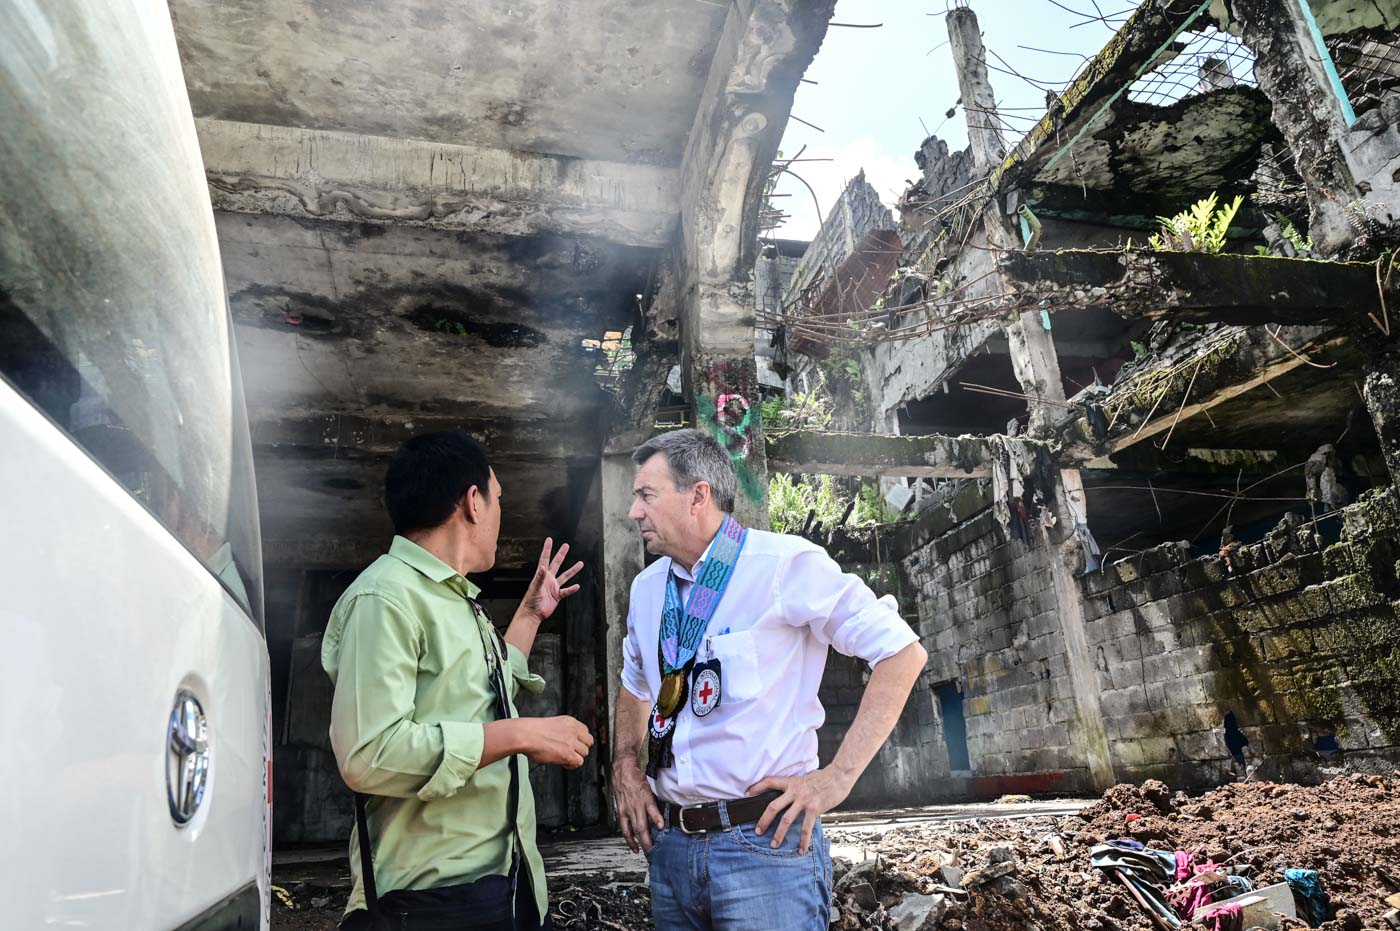 IN MARAWI. Maurer walks along the streets of the most affected area in Mawari City. Photo by Alecs Ongcal/ICRC